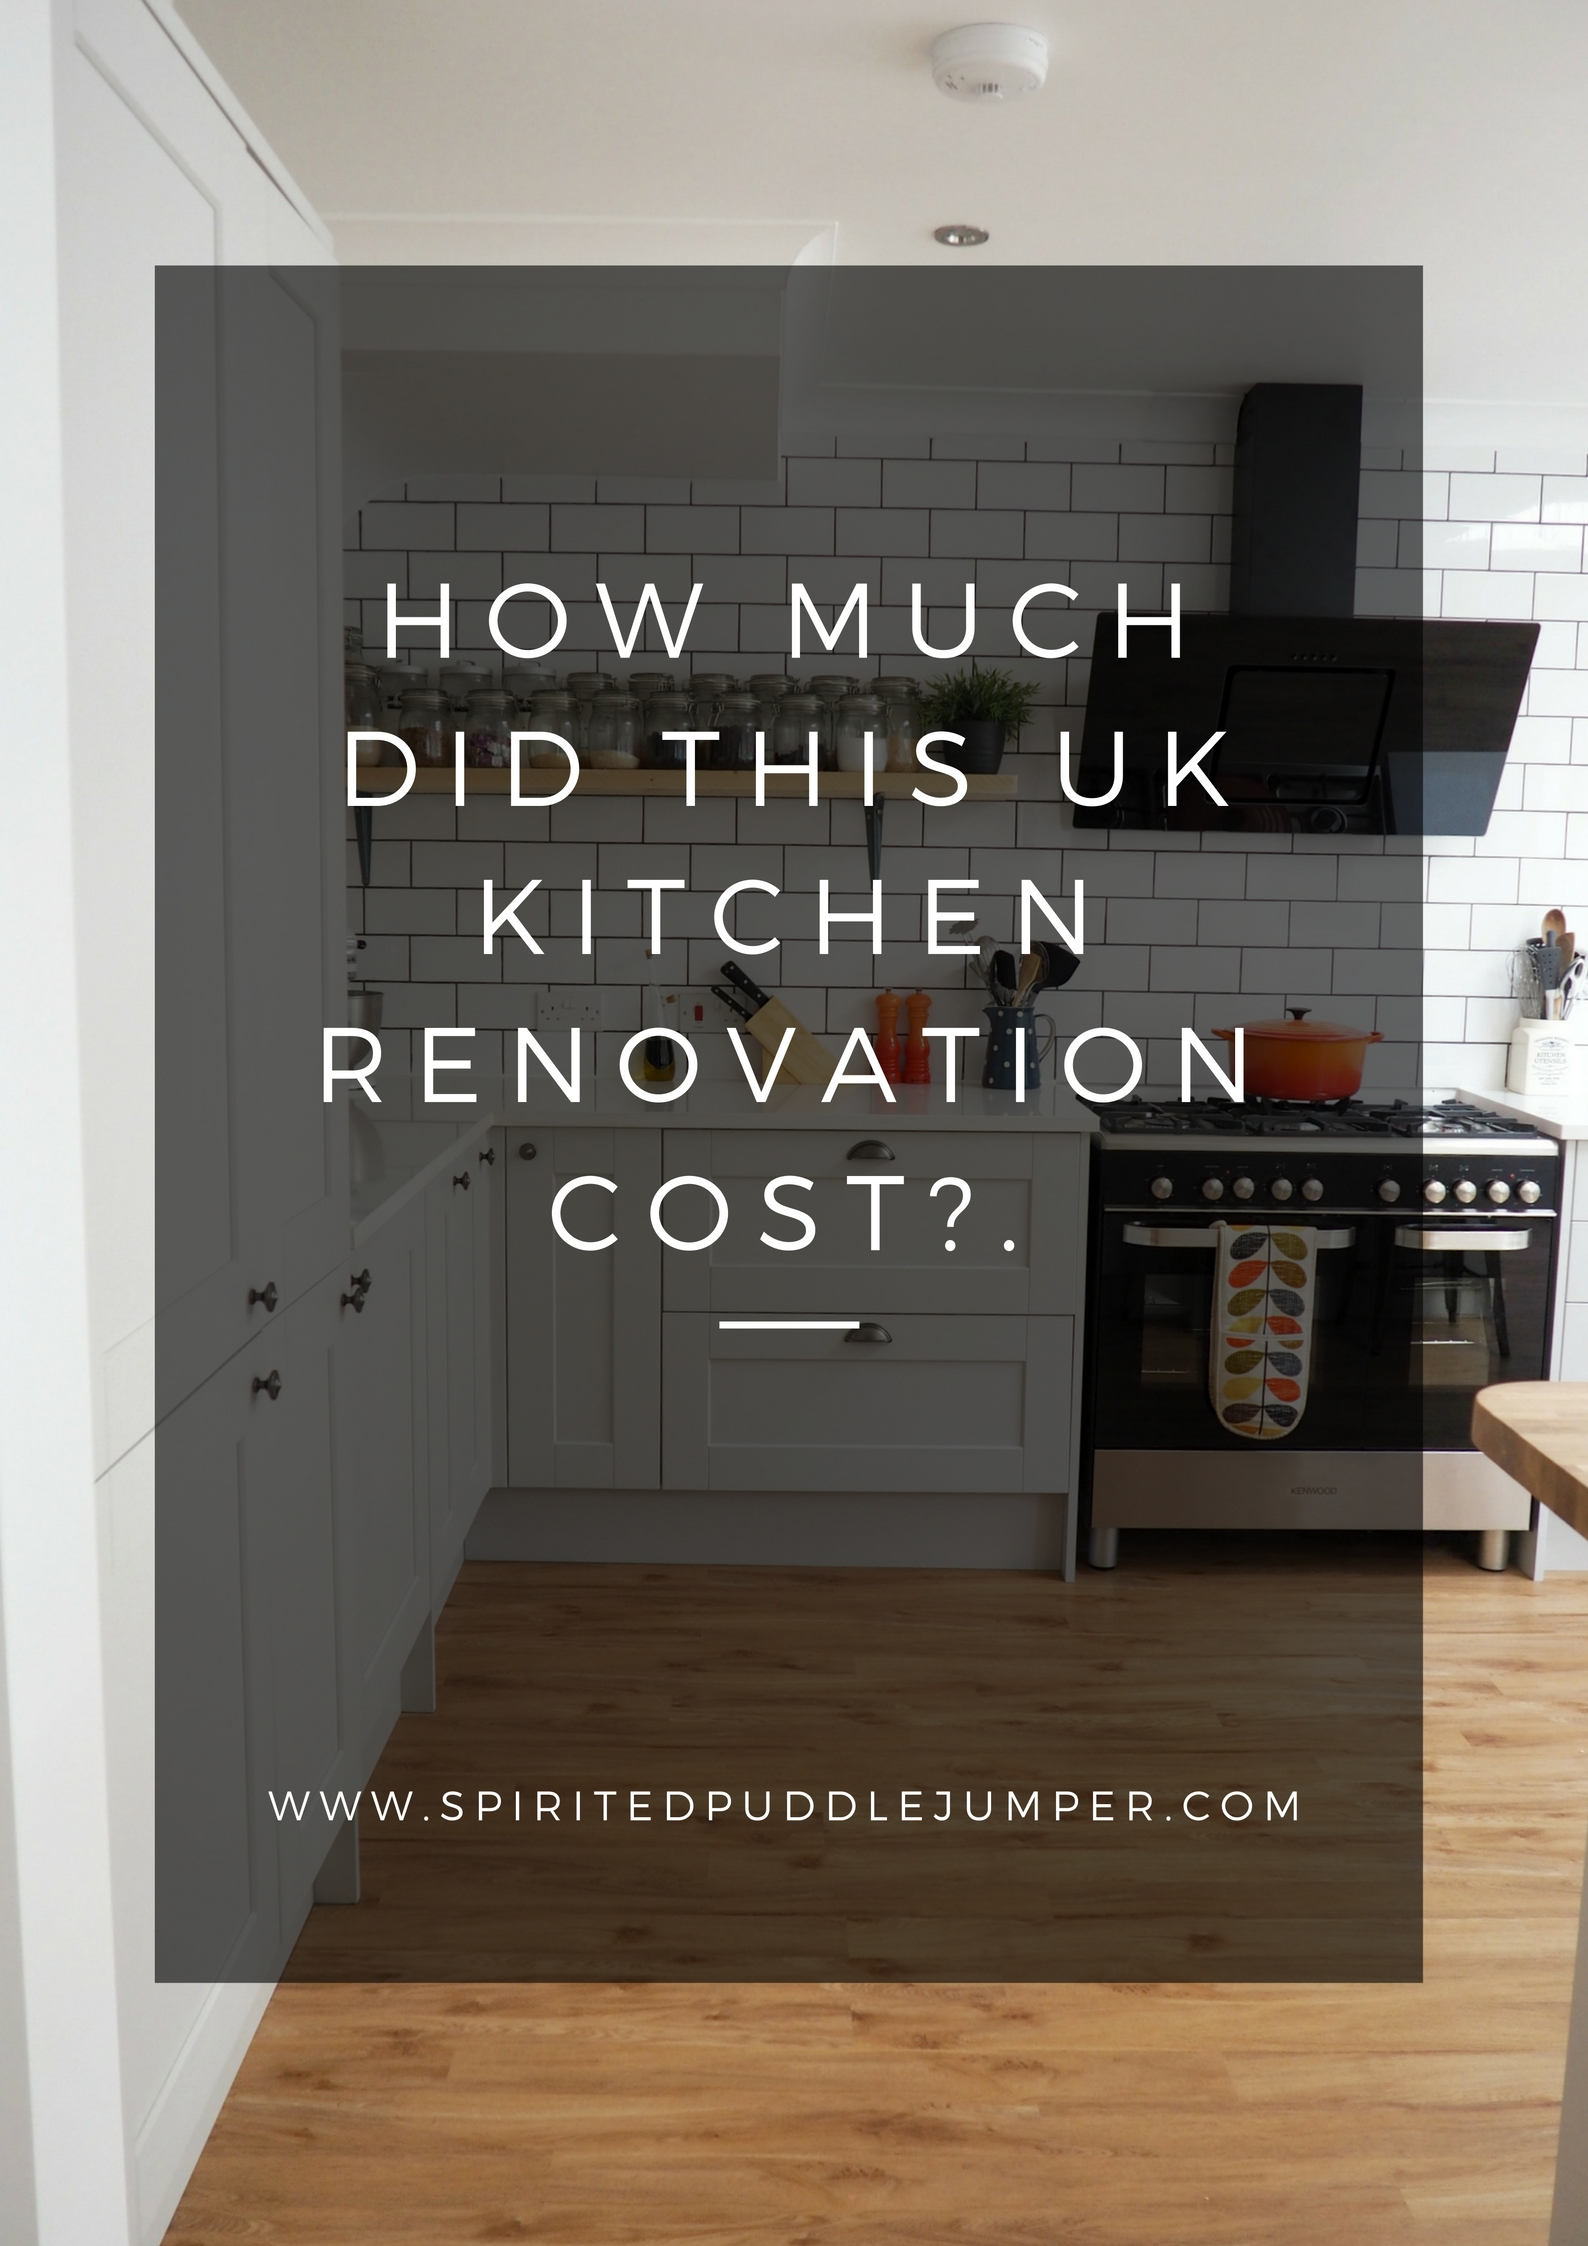 How Much Did Our UK Kitchen Renovation Cost?